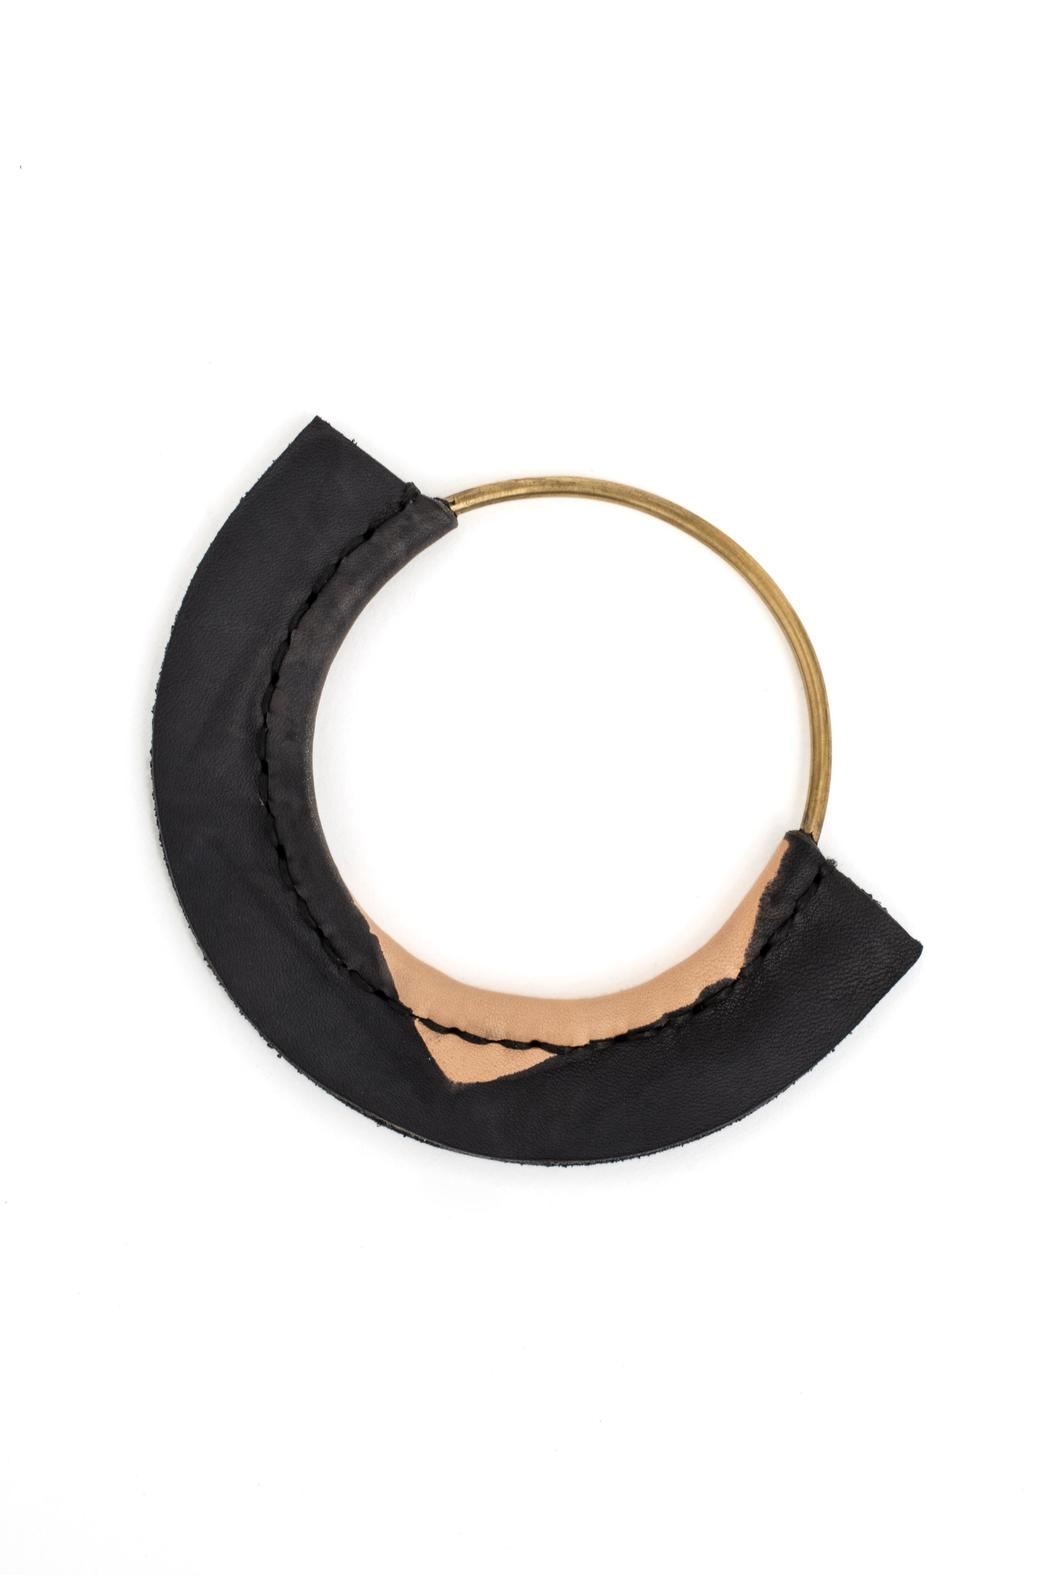 MEIRAV OHAYON Leather Bangle Bracelet - Main Image